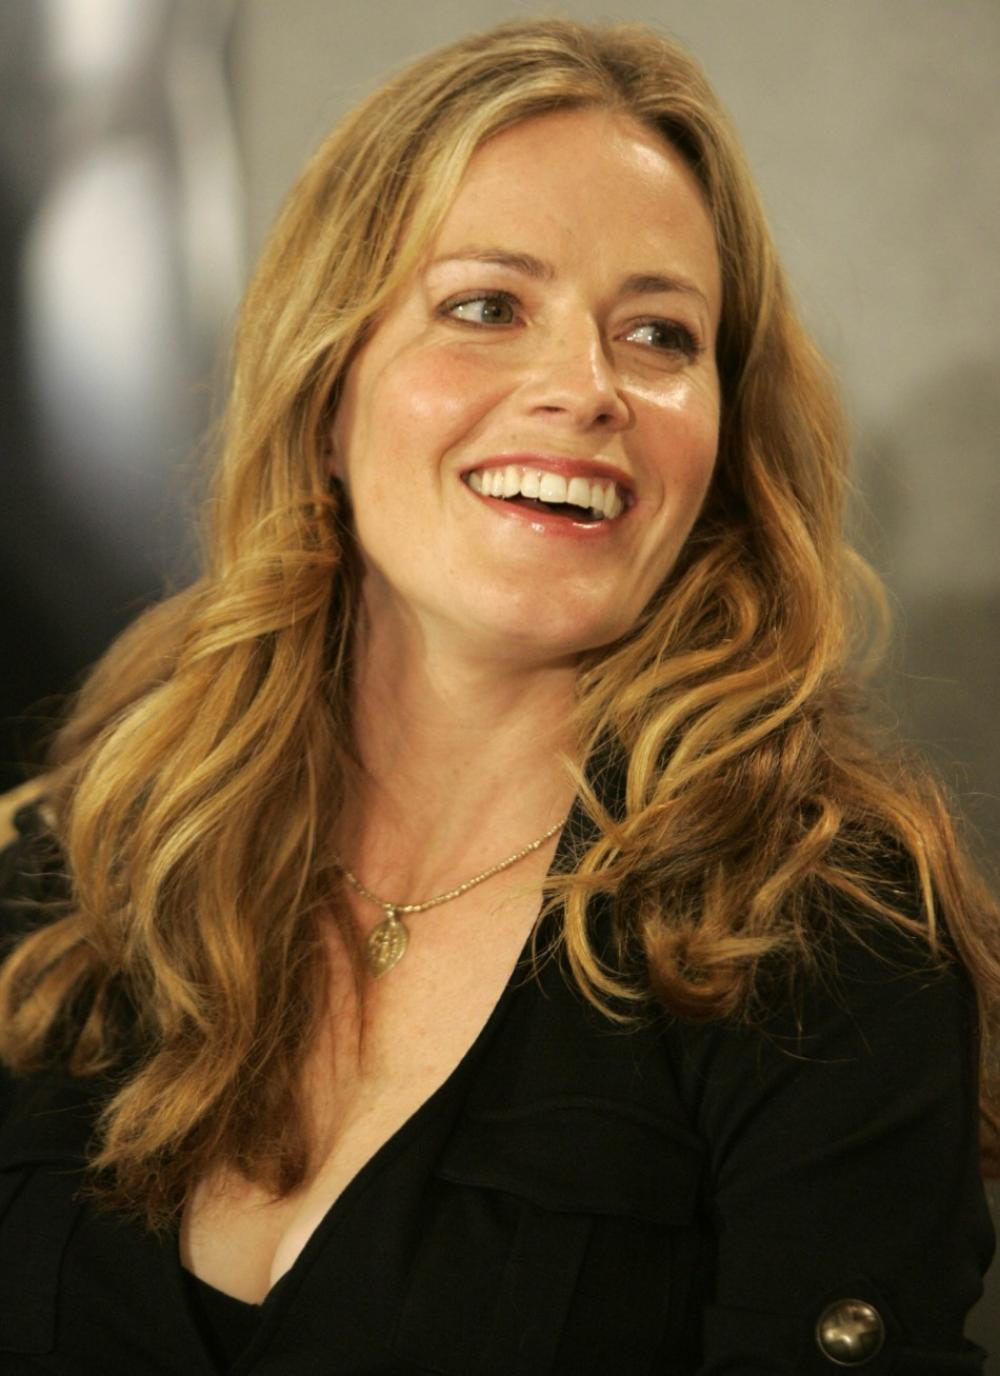 Elisabeth Shue photos and Biography - Digital HD Photos